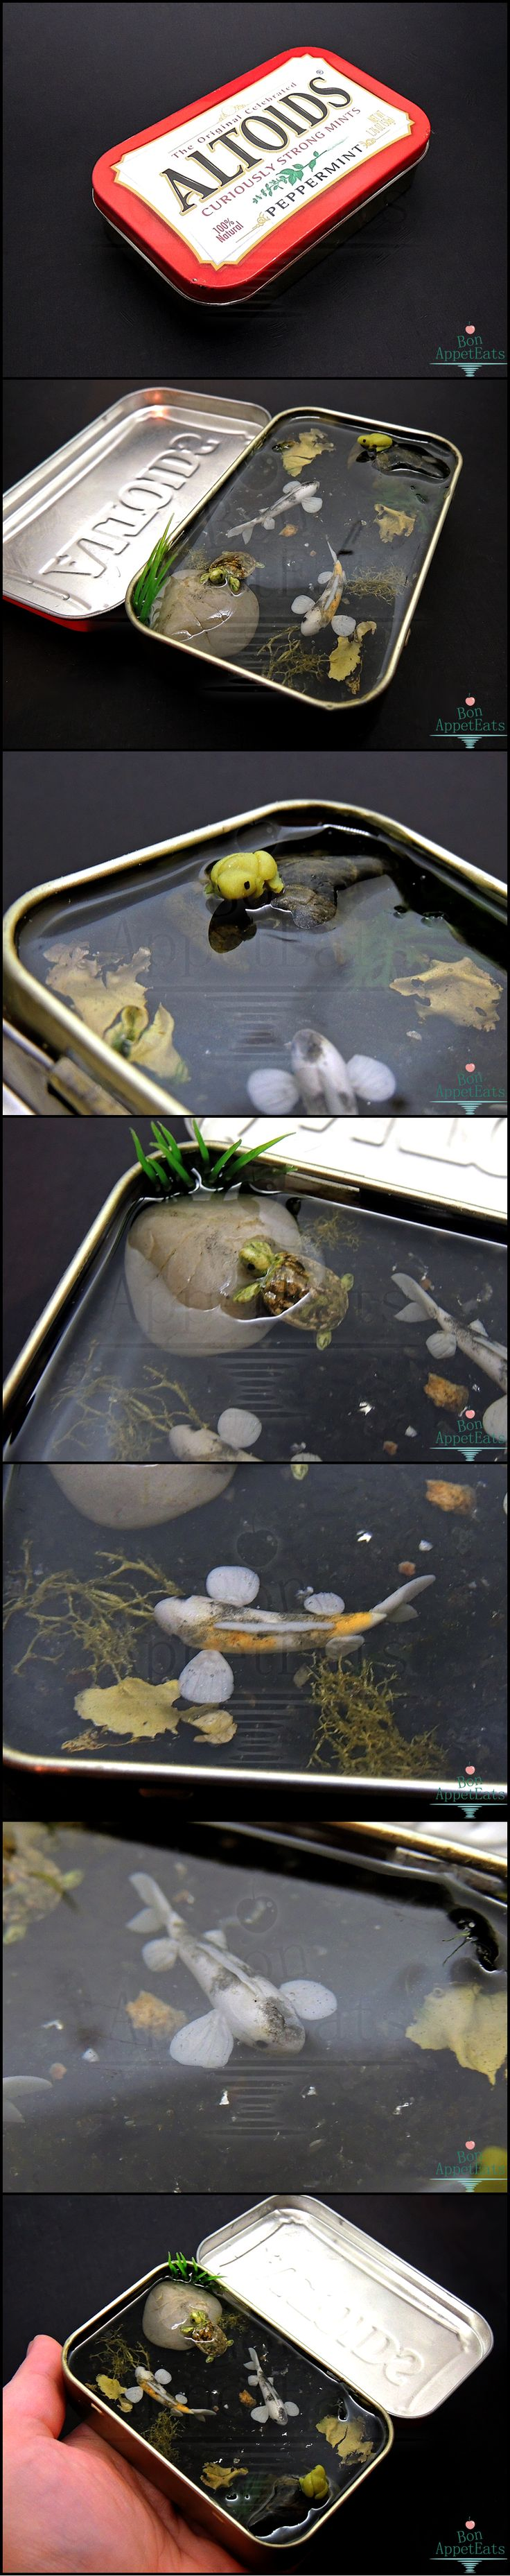 614 best images about mini stuff on pinterest for Fish pond stuff